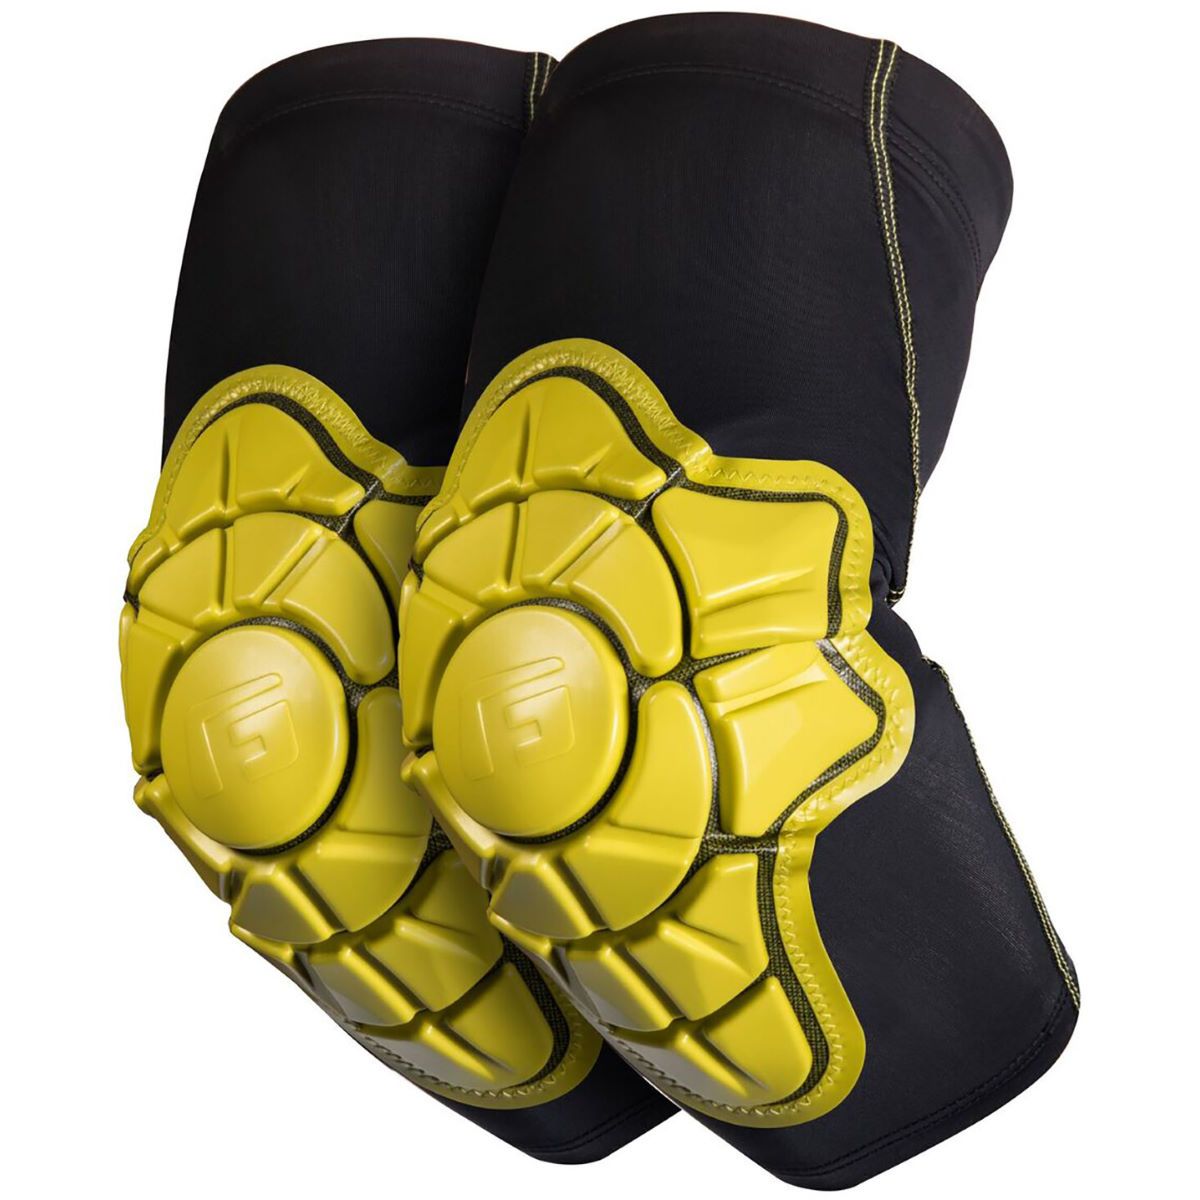 Coudières G-Form Pro-X - XL Iconic Yellow Protections